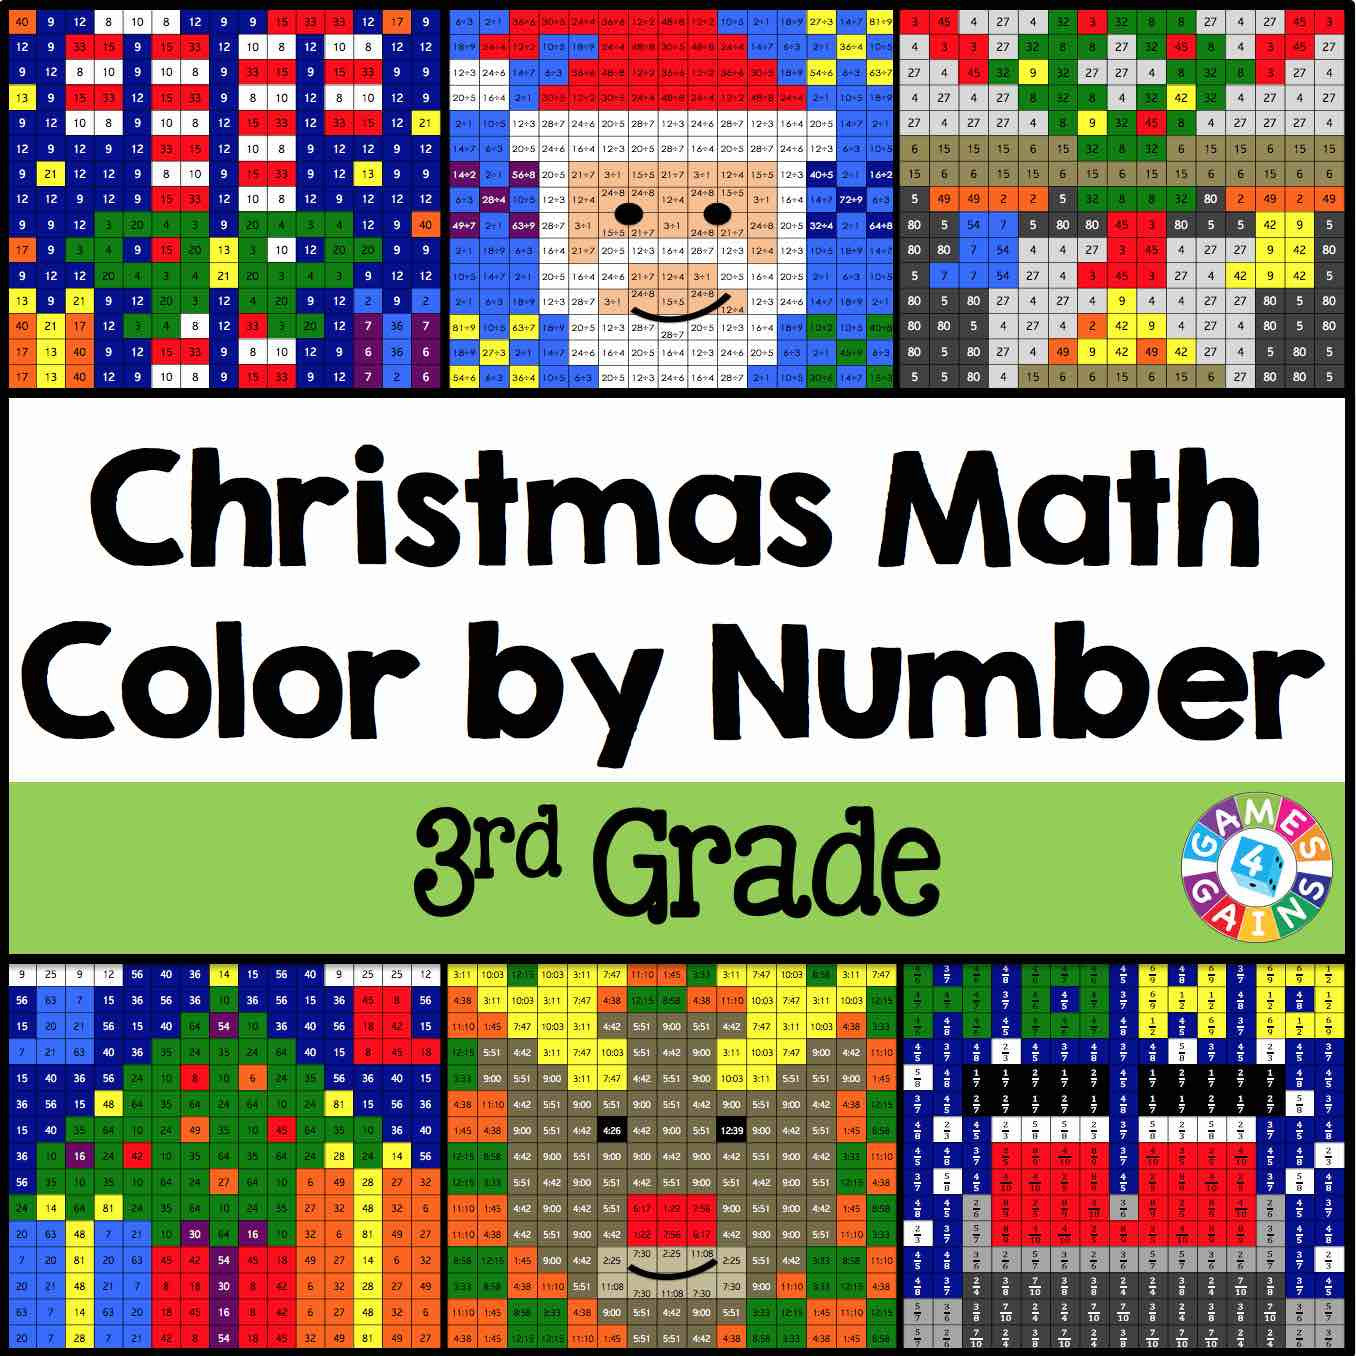 Christmas_Math_Color_by_Number_3rd_Grade_Cover.jpg?v=1447630010